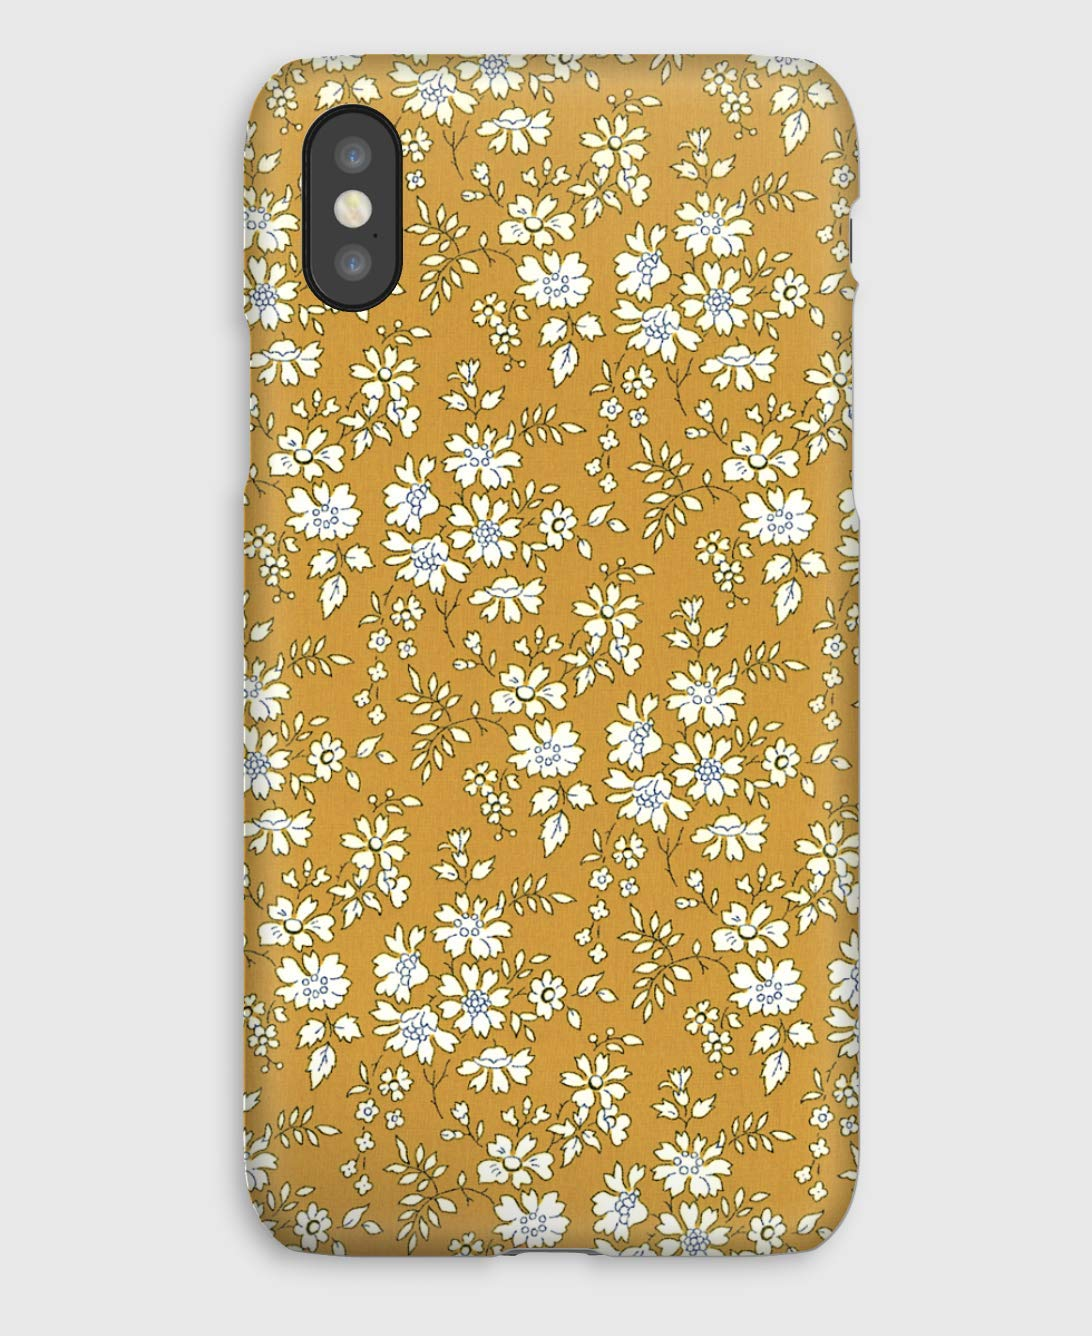 Liberty Capel G, coque pour iPhone XS, XS Max, XR, X, 8, 8+, 7, 7+, 6S, 6, 6S+, 6+, 5C, 5, 5S, 5SE, 4S, 4,